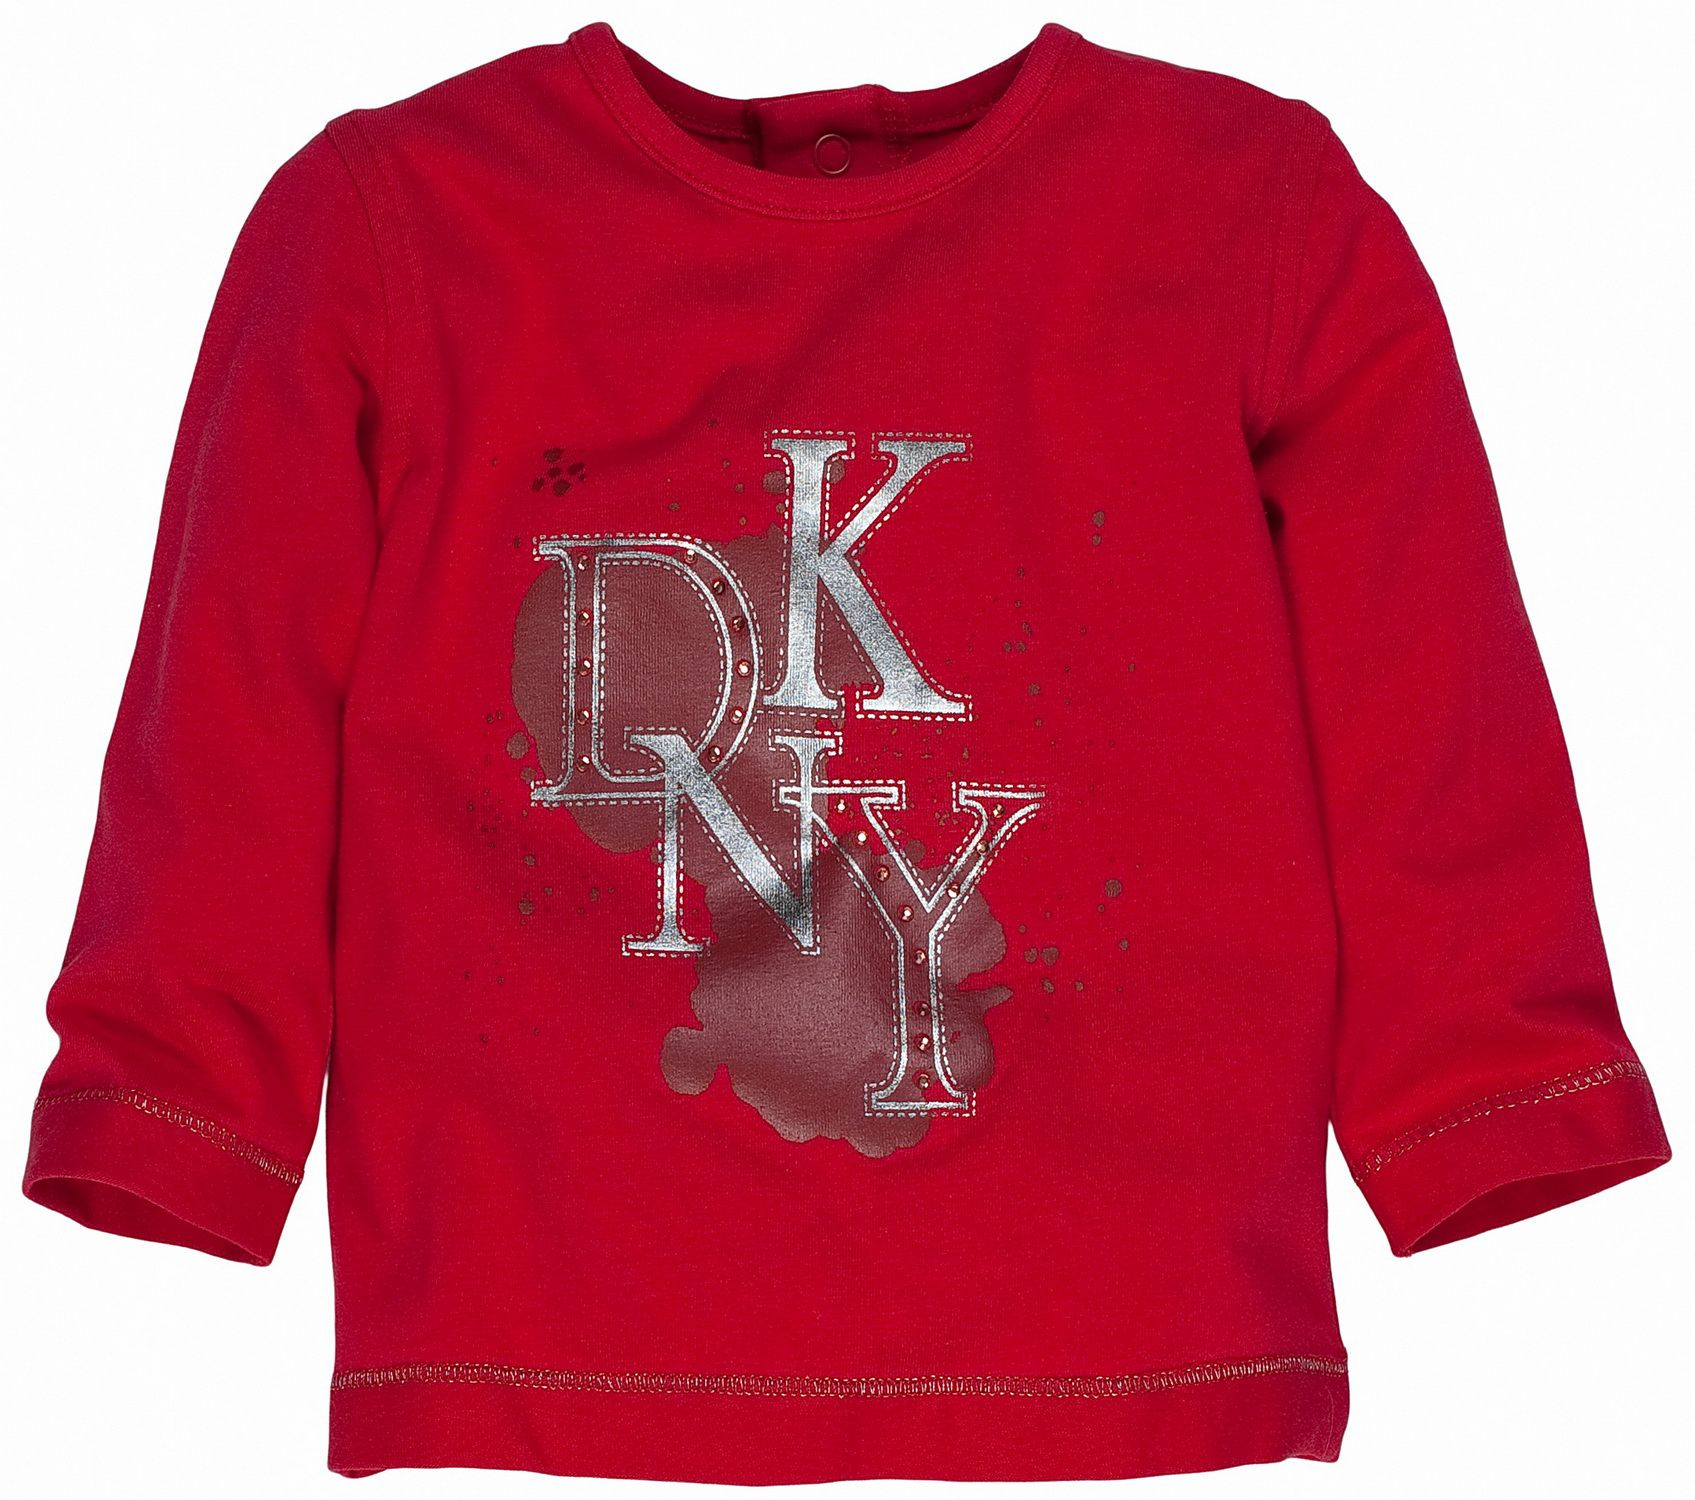 DKNY Childrens DKNY Long sleeved T-Shirt, Red product image